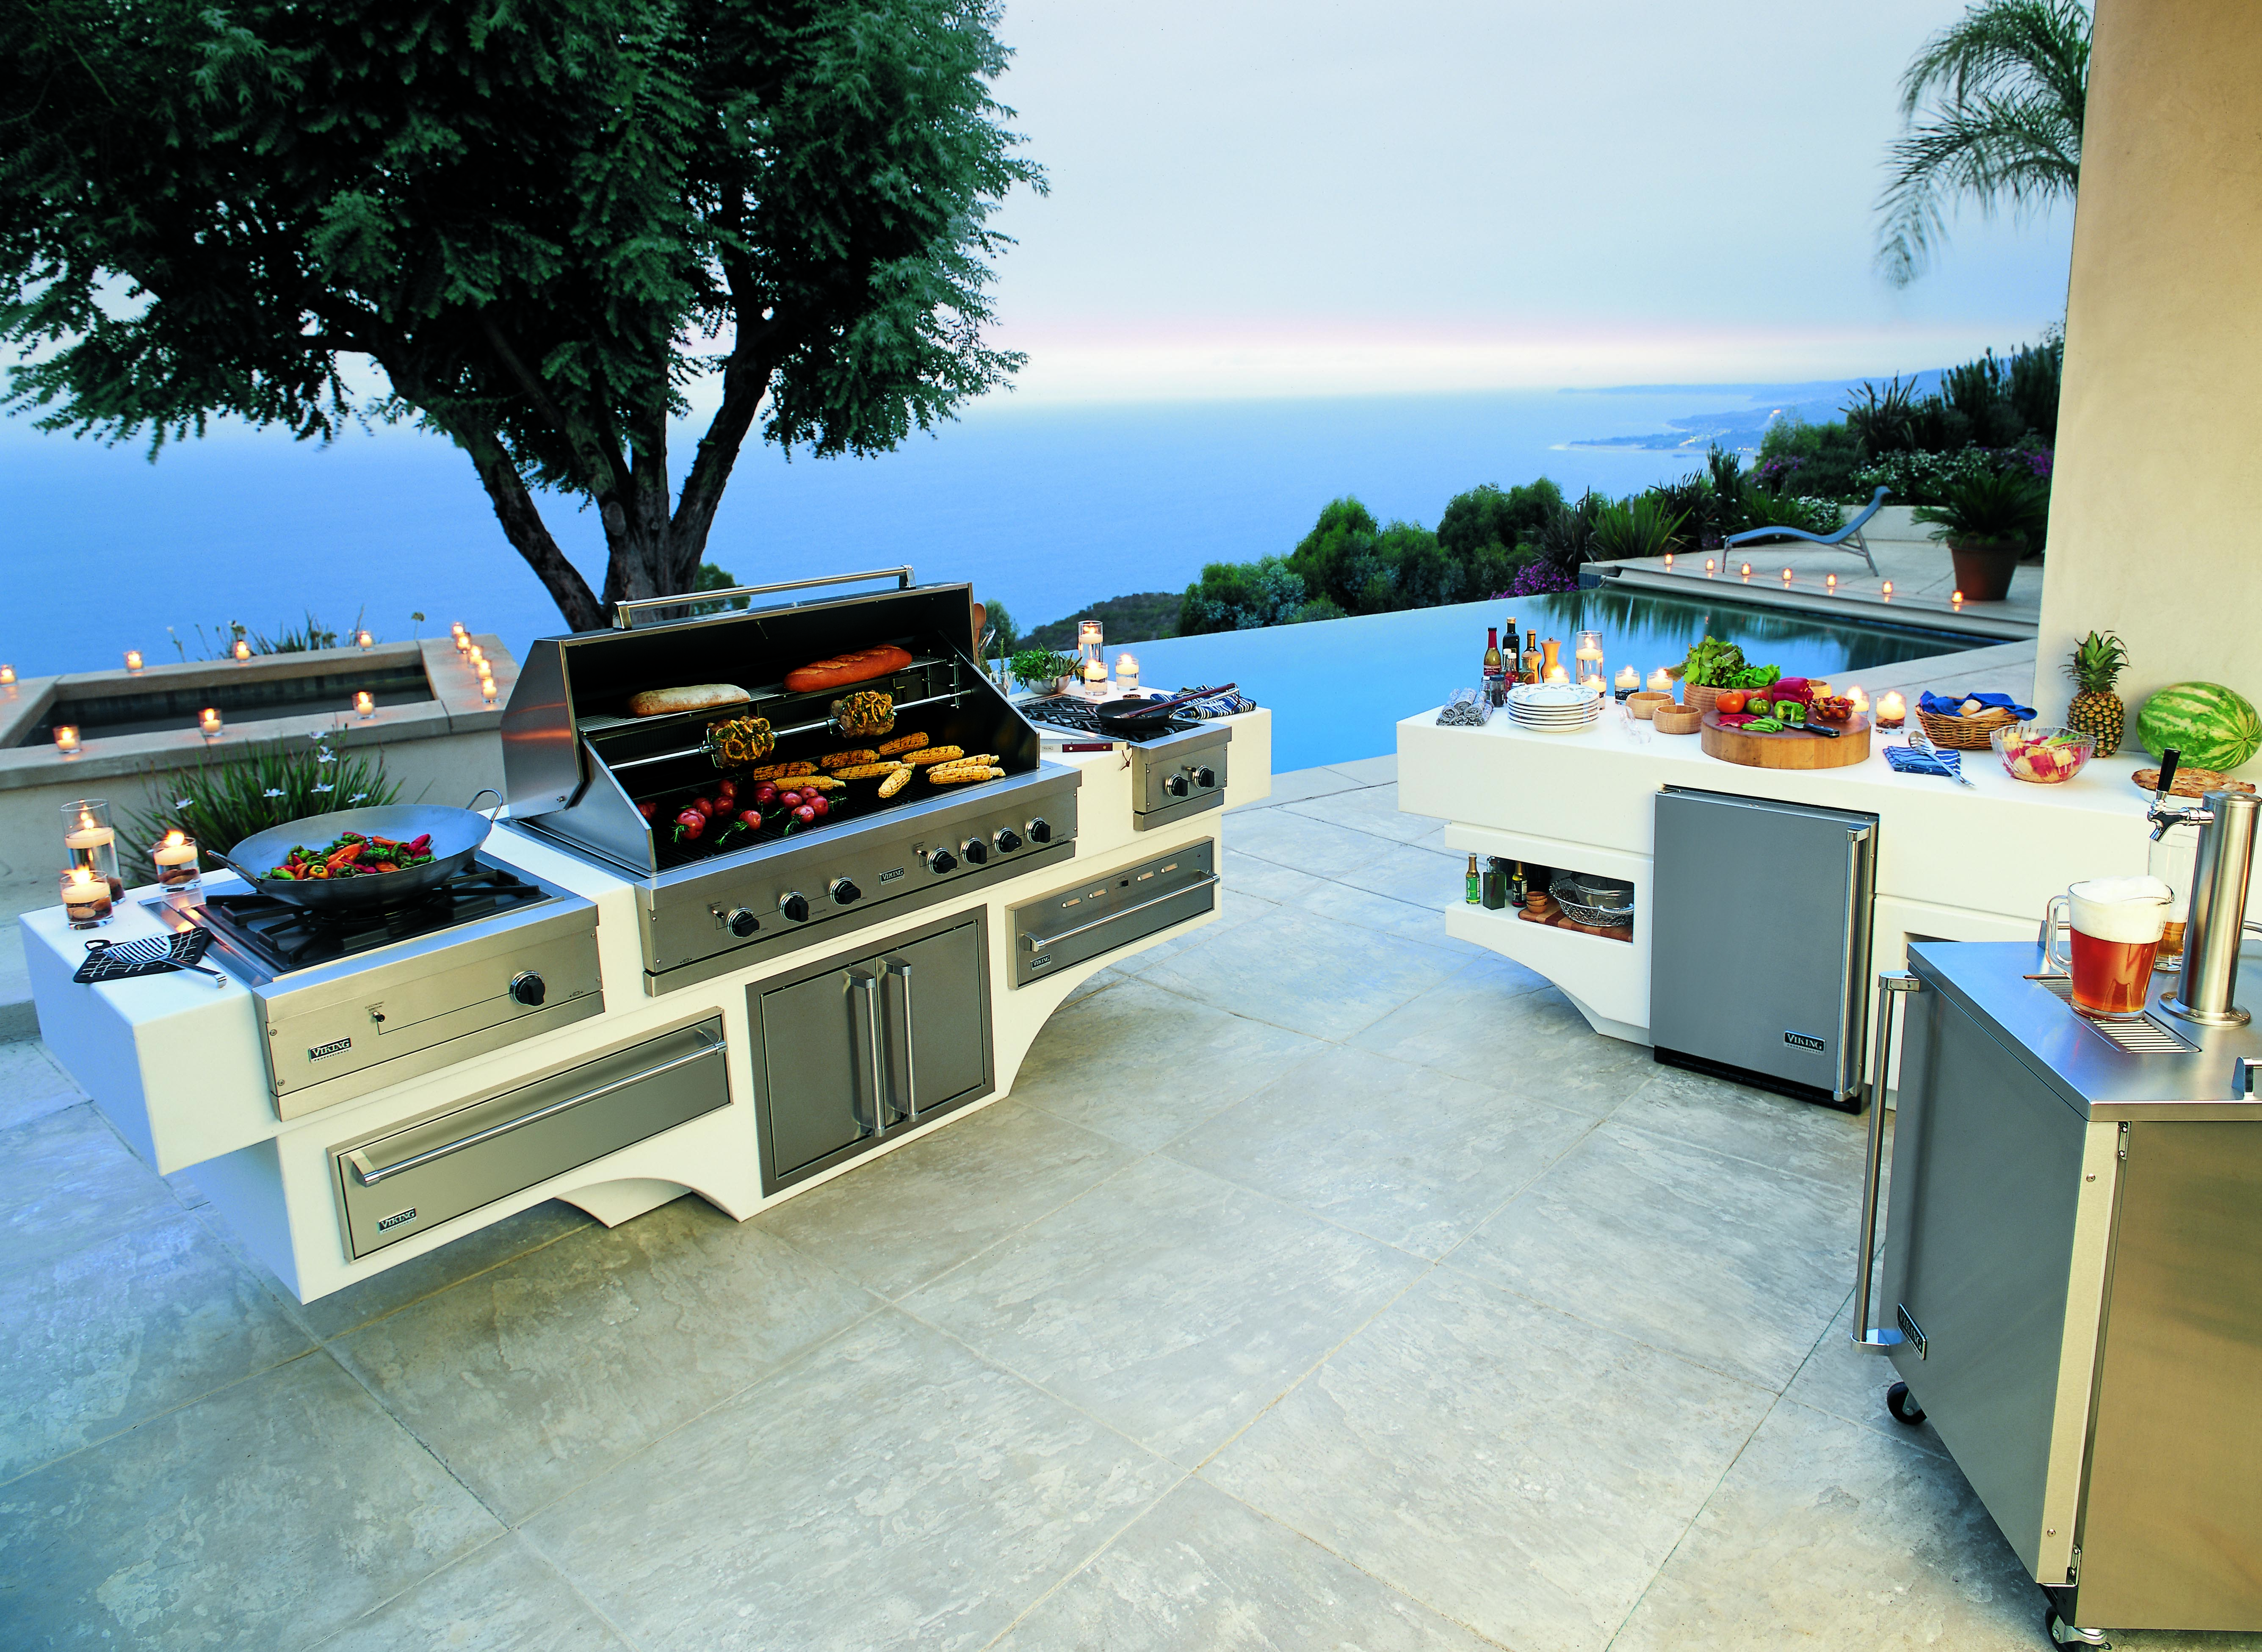 Viking Range Barbecue Grills